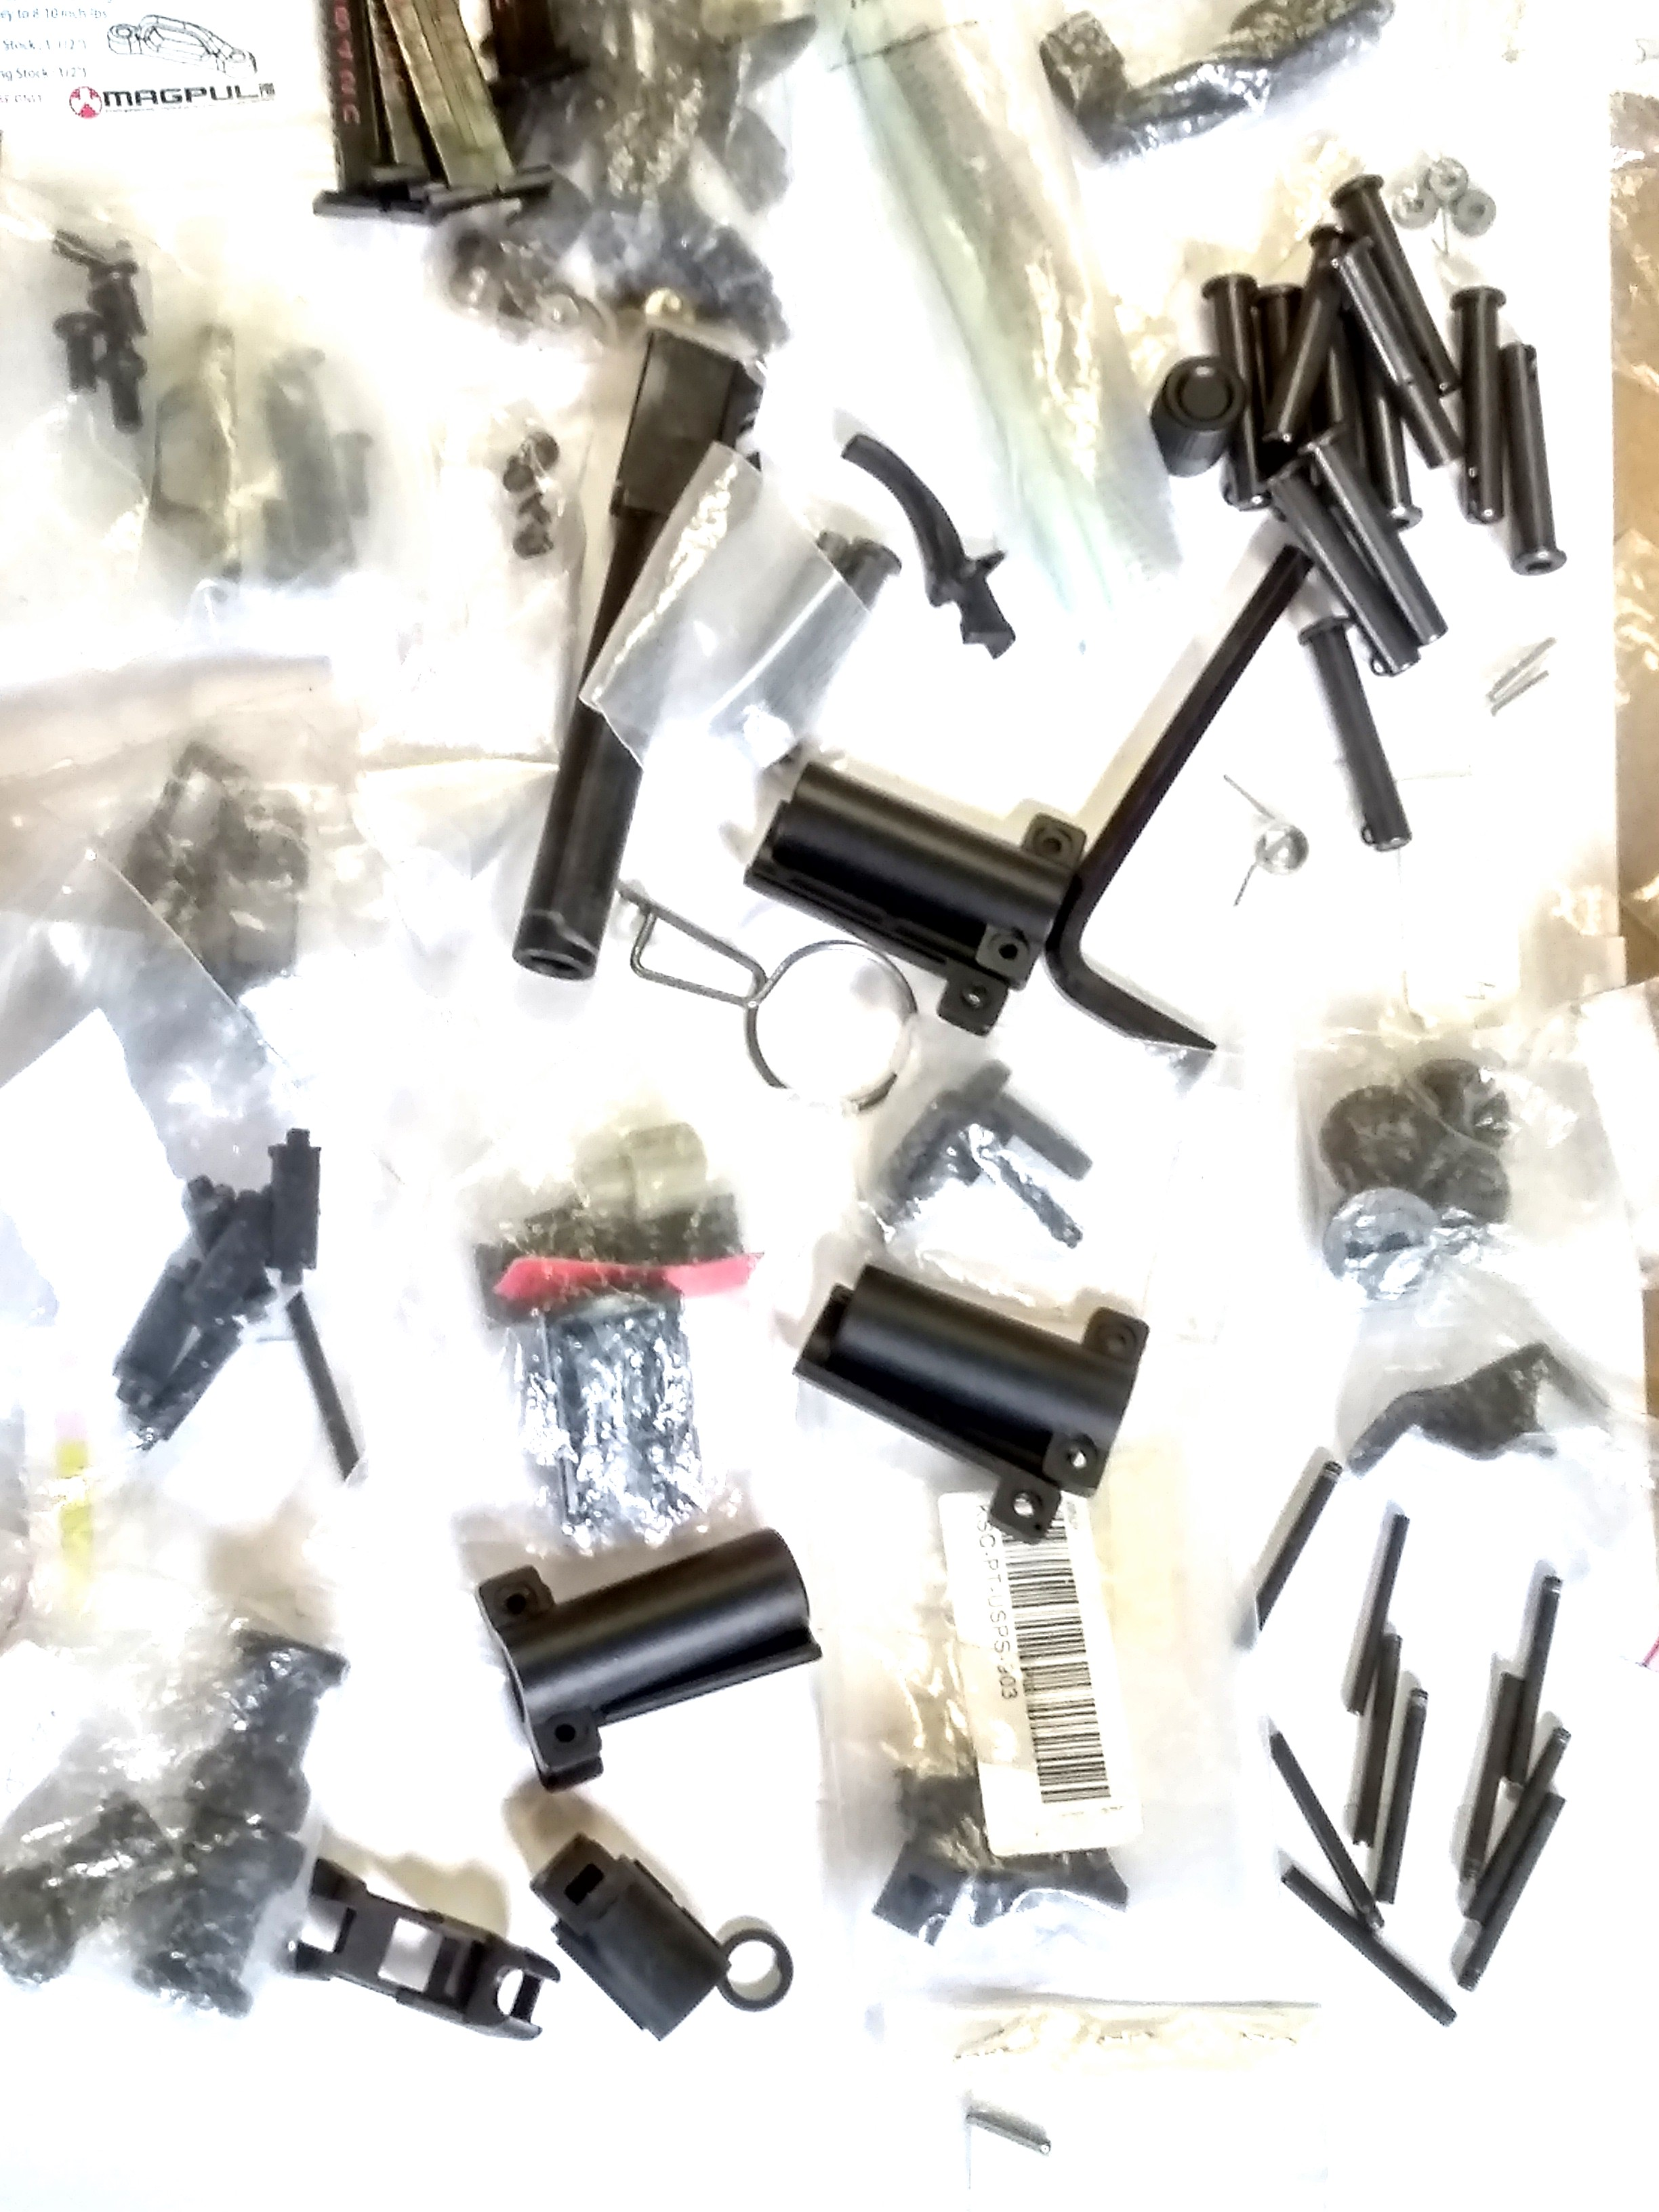 VARIETY OF CYBERGUN AIRSOFT PARTS